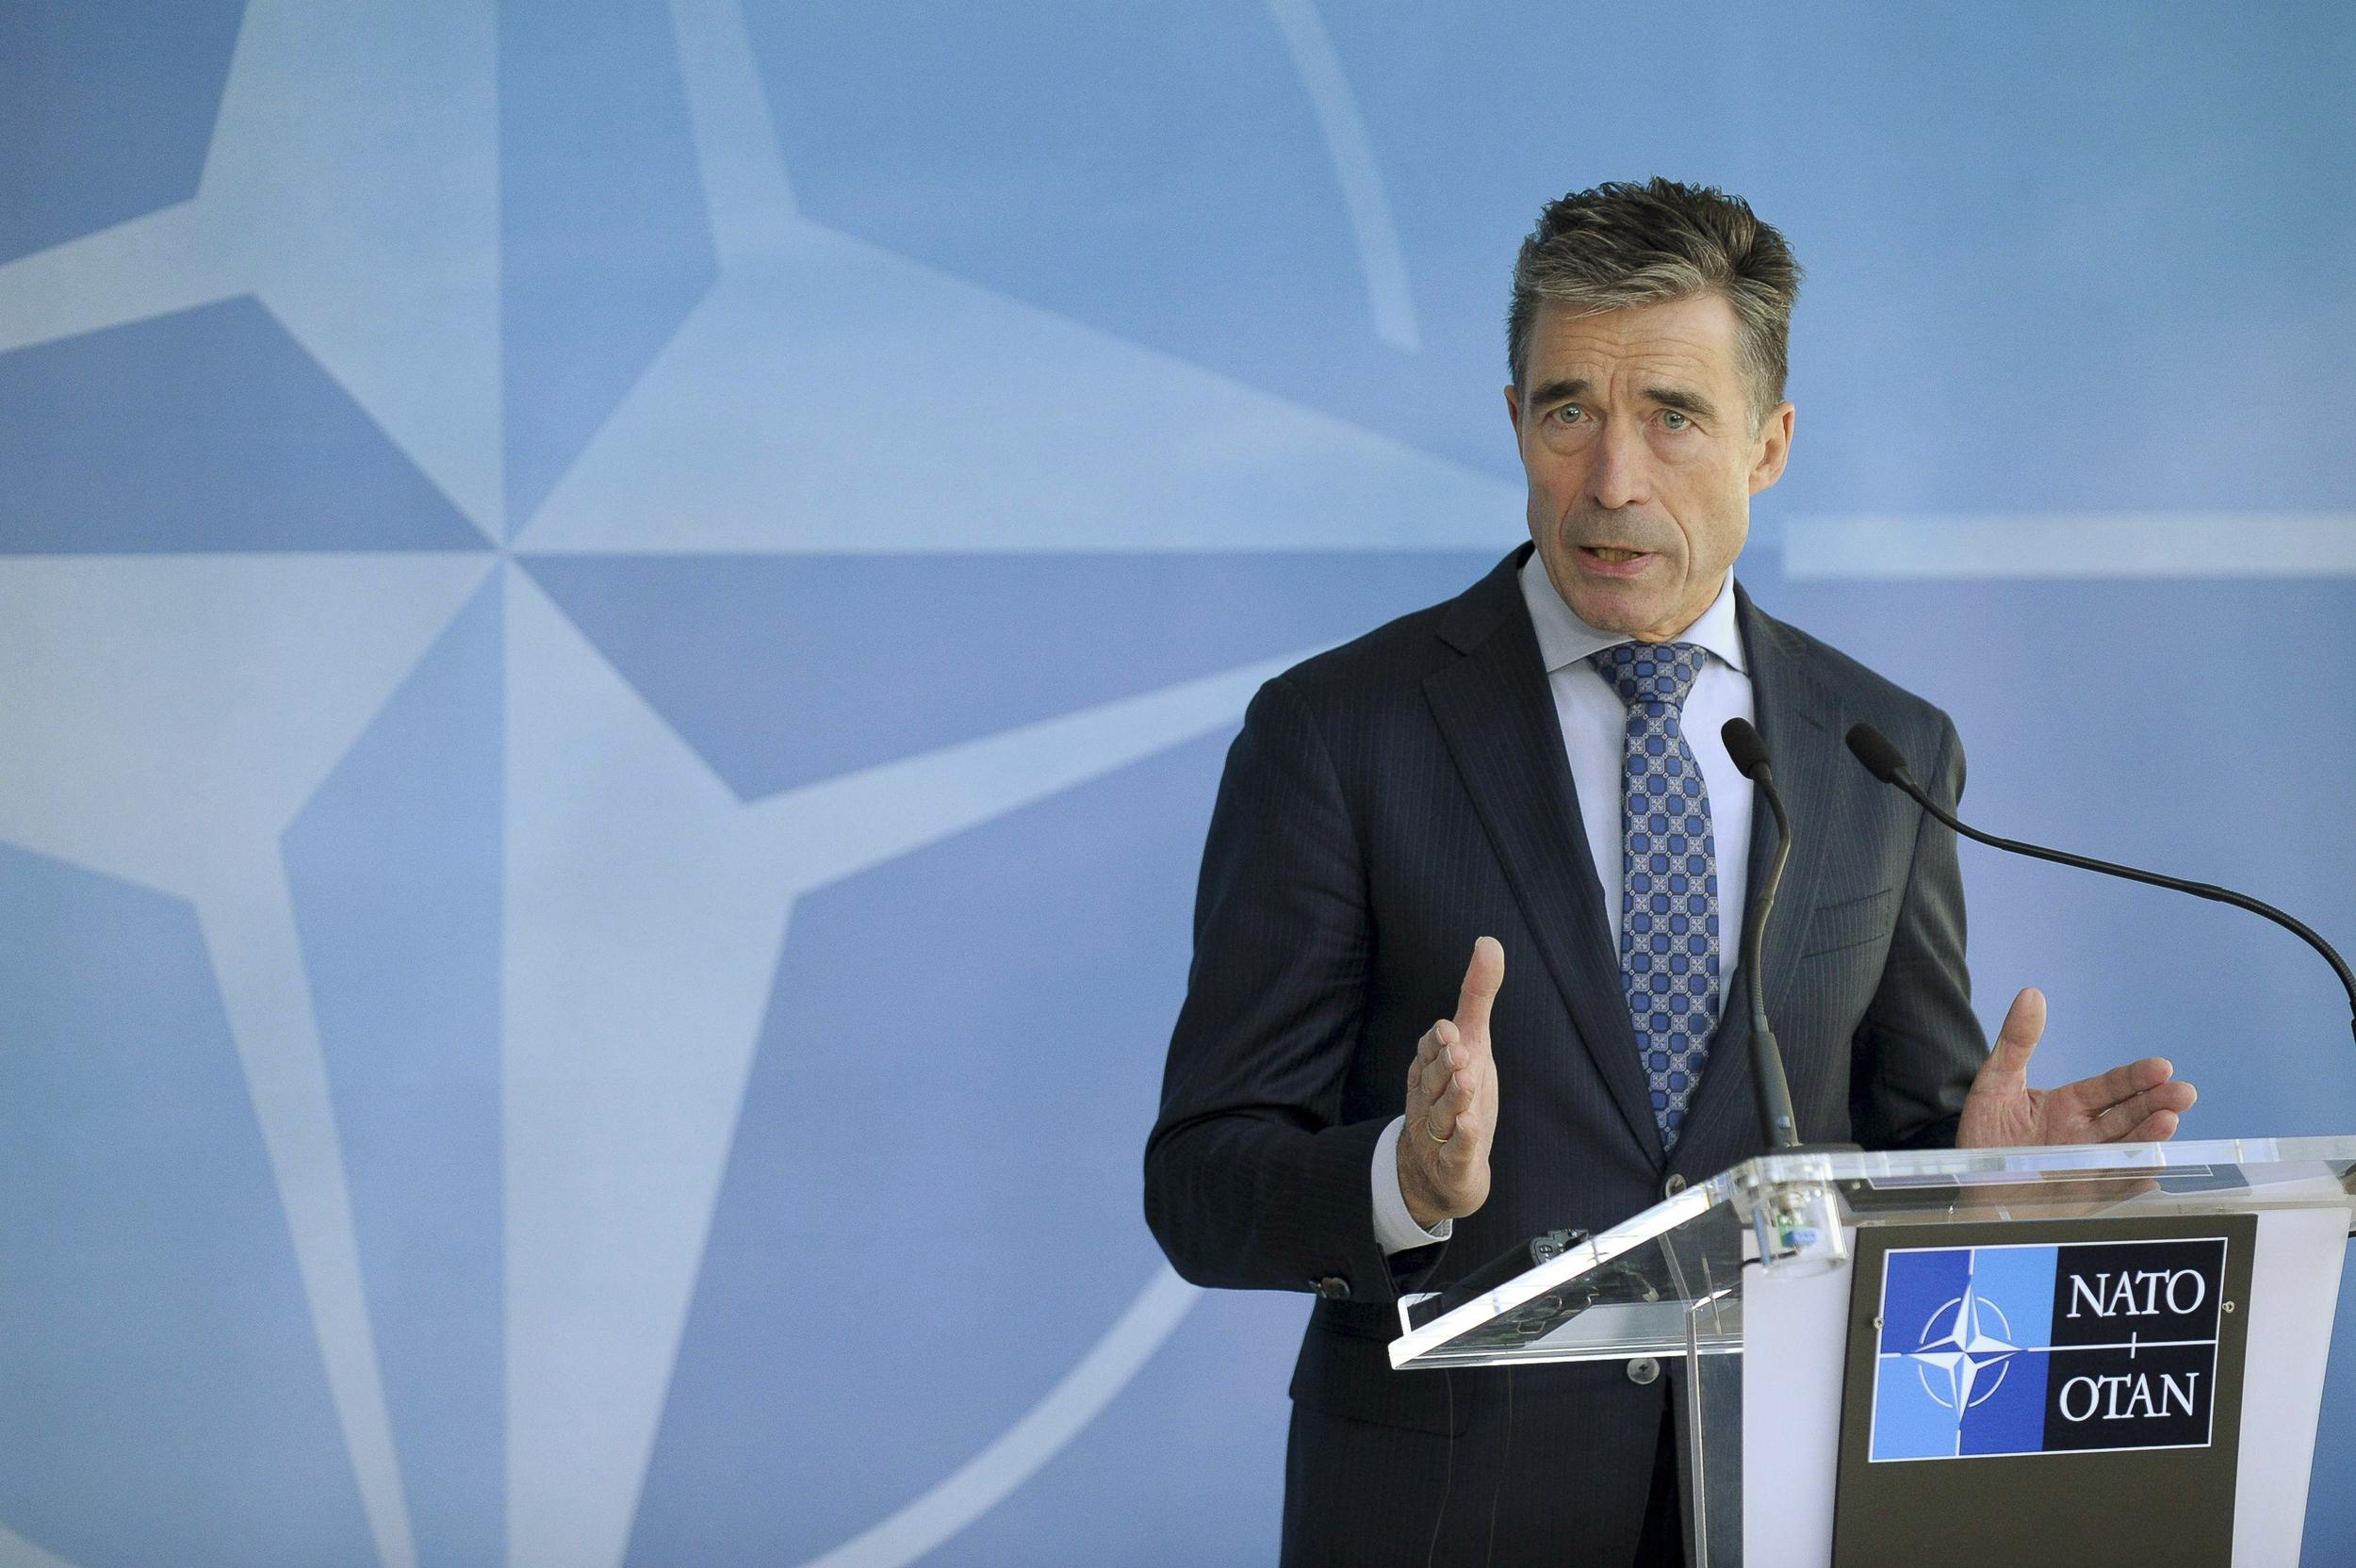 Image: NATO Secretary-General Anders Fogh Rasmussen speaks at a news conference at the Alliance's headquarters in Brussels